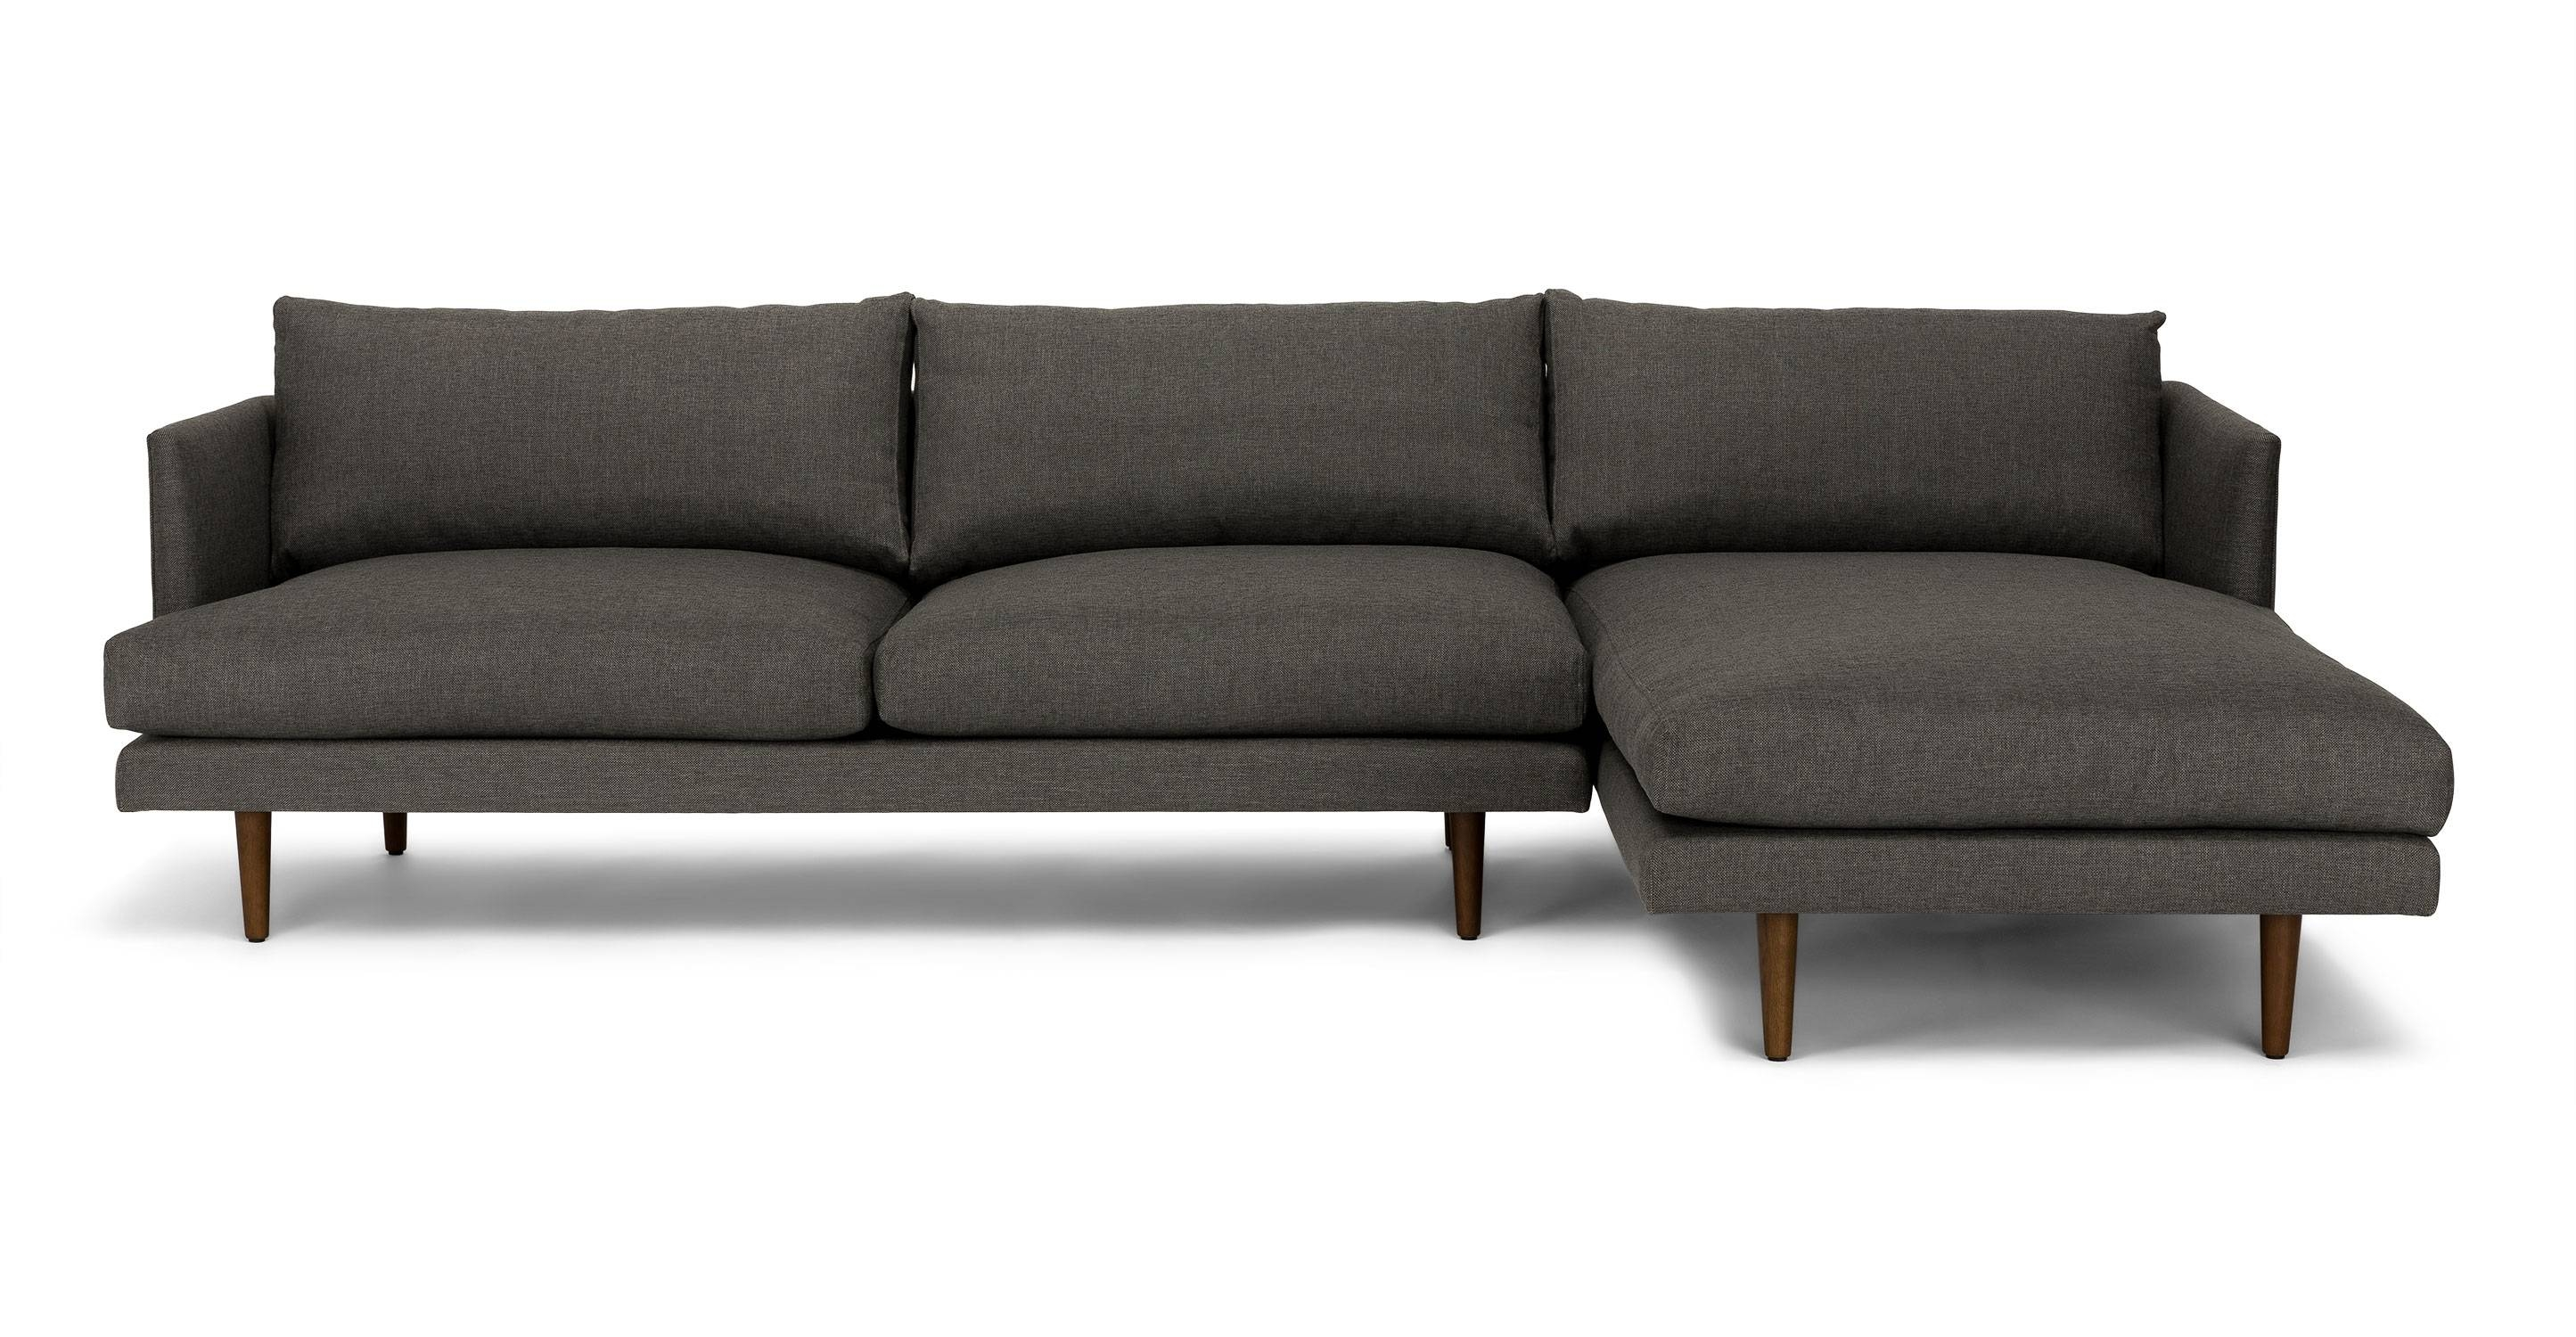 Fresh Mid Century Modern Sectional Sofas 11 In Mitchell Gold regarding Mitchell Gold Clifton Sectional Sofas (Image 6 of 15)